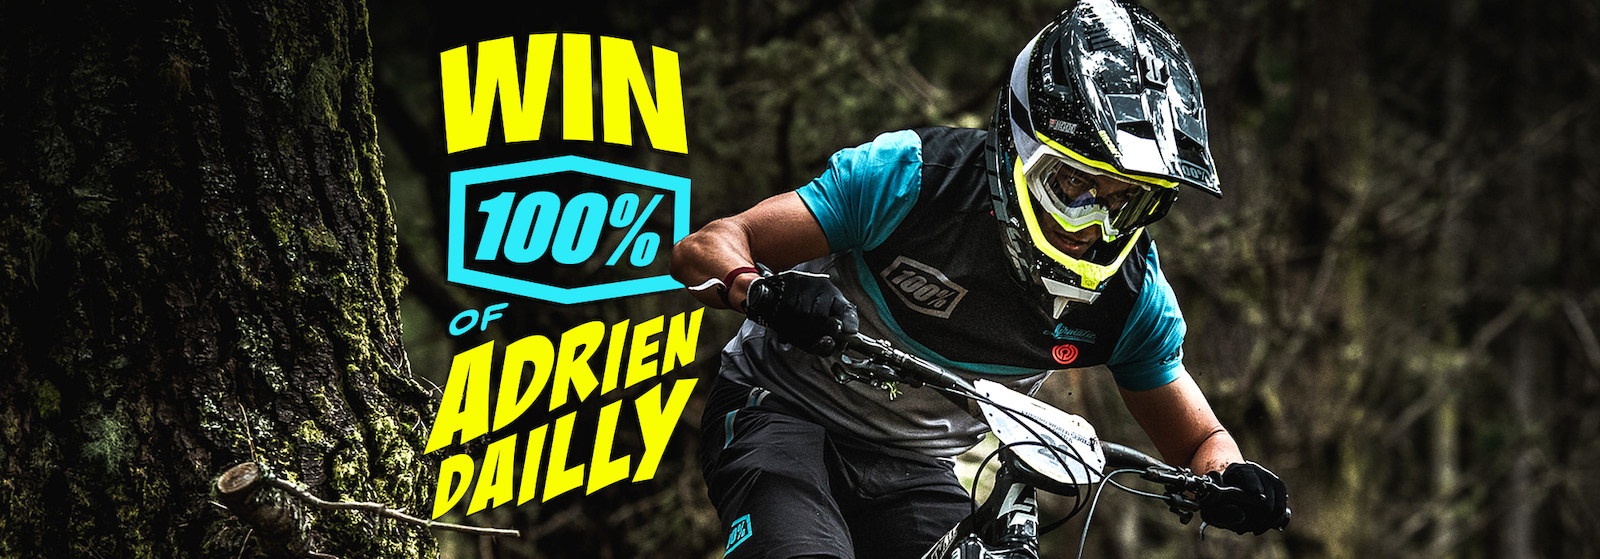 Adrien Dailly x Ride 100 Kit Giveaway Article Banner